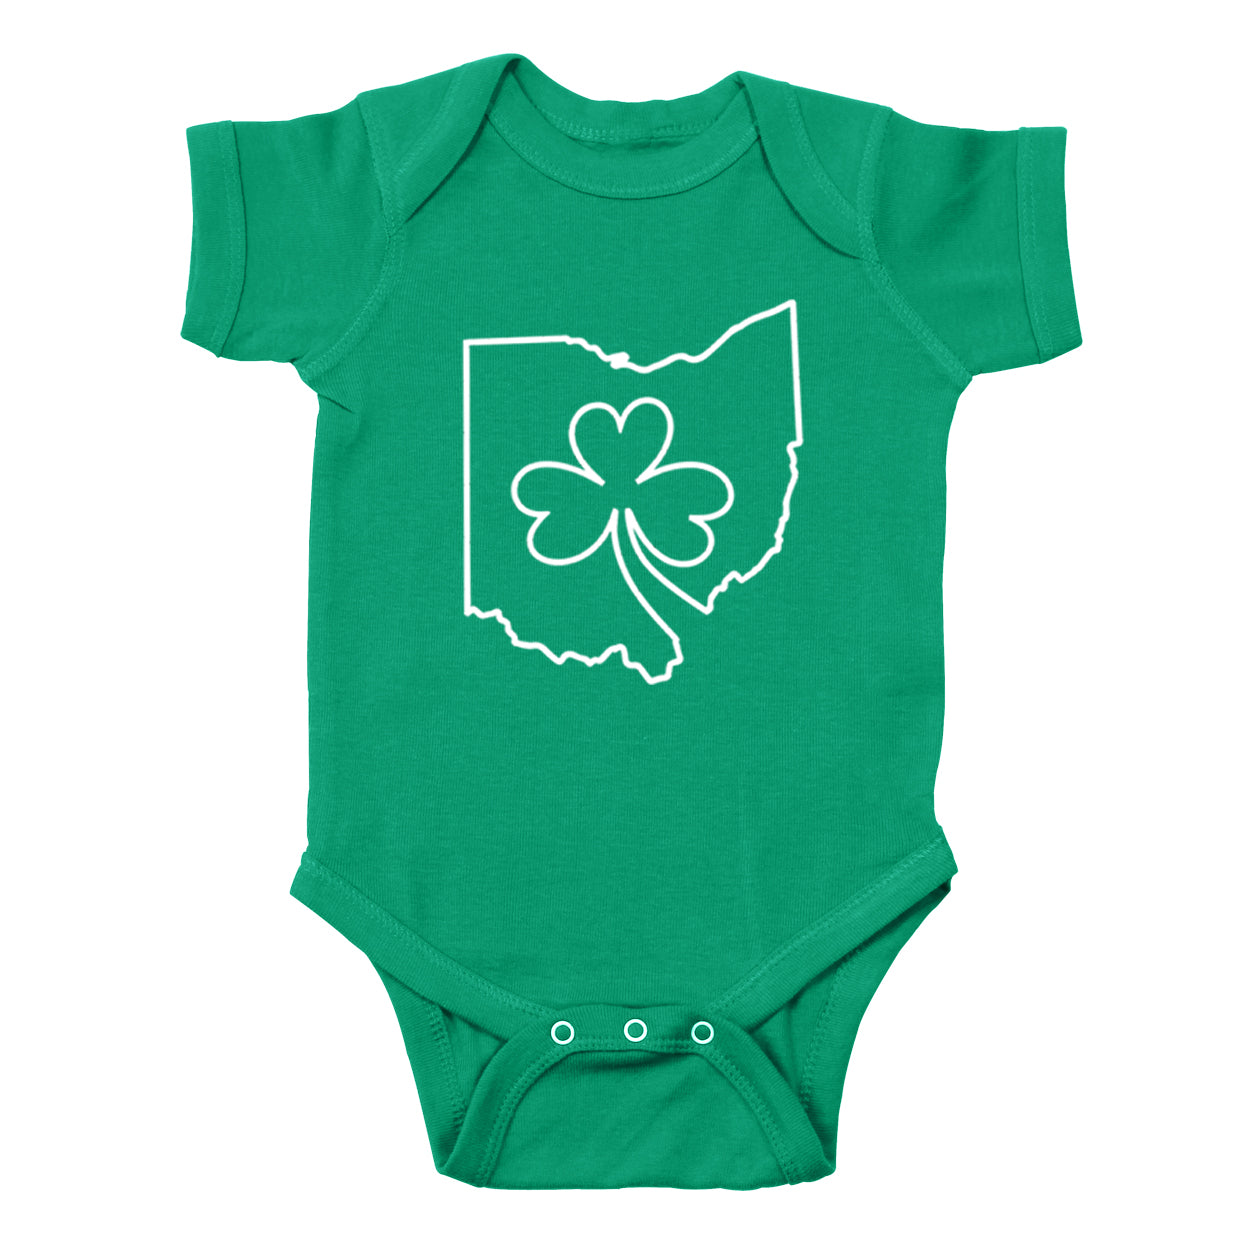 Ohio one line Shamrock Baby One Piece - Clothe Ohio - Soft Ohio Shirts